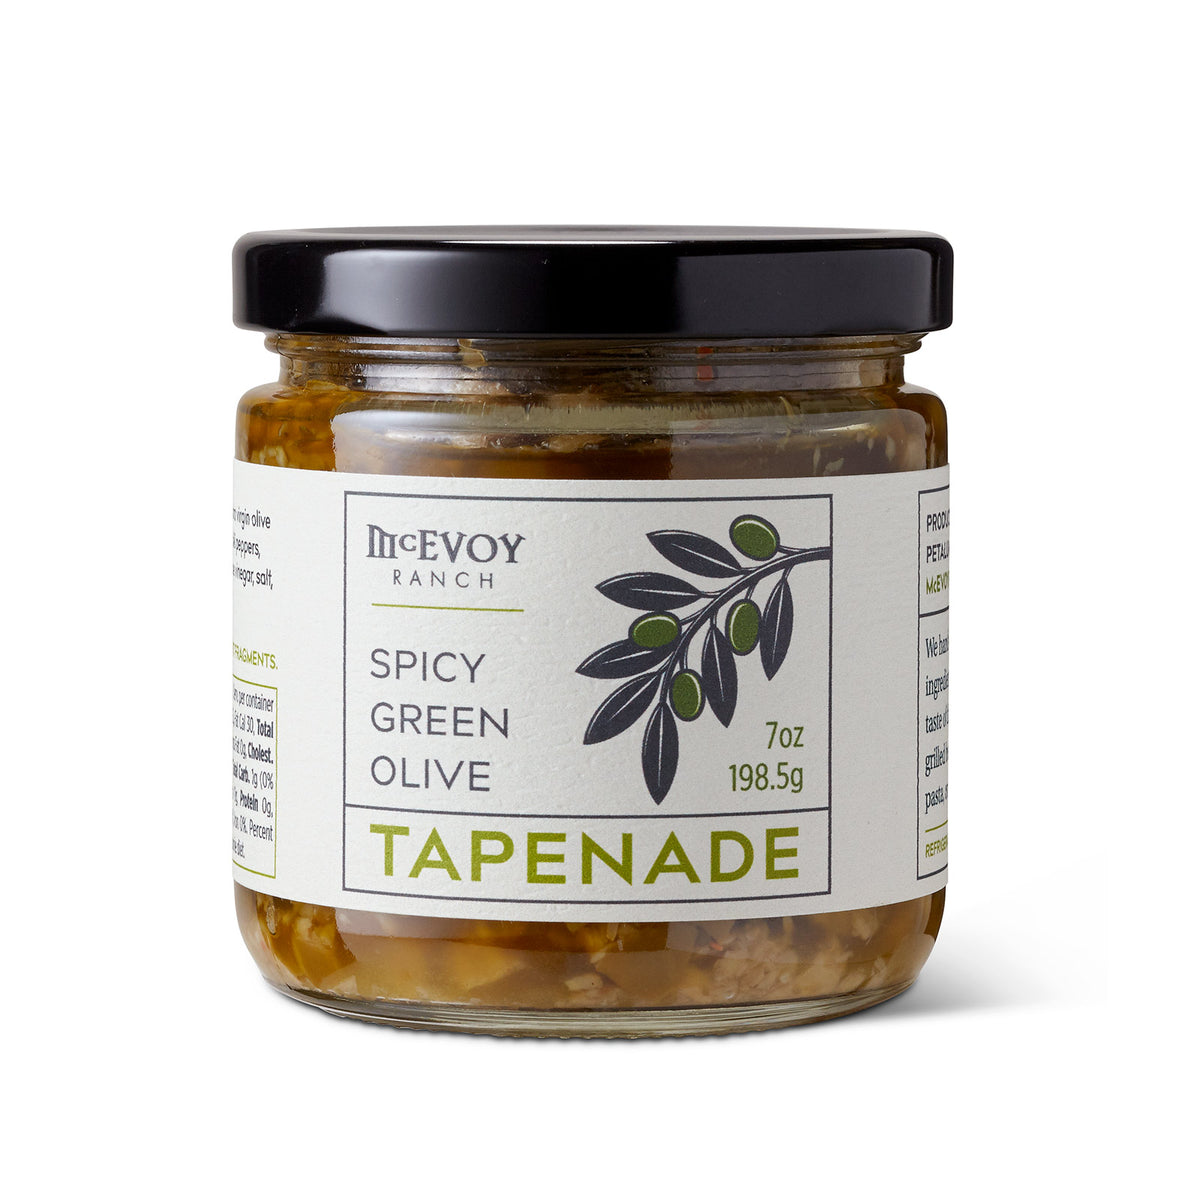 Spicy Green Olive Tapenade, 7oz